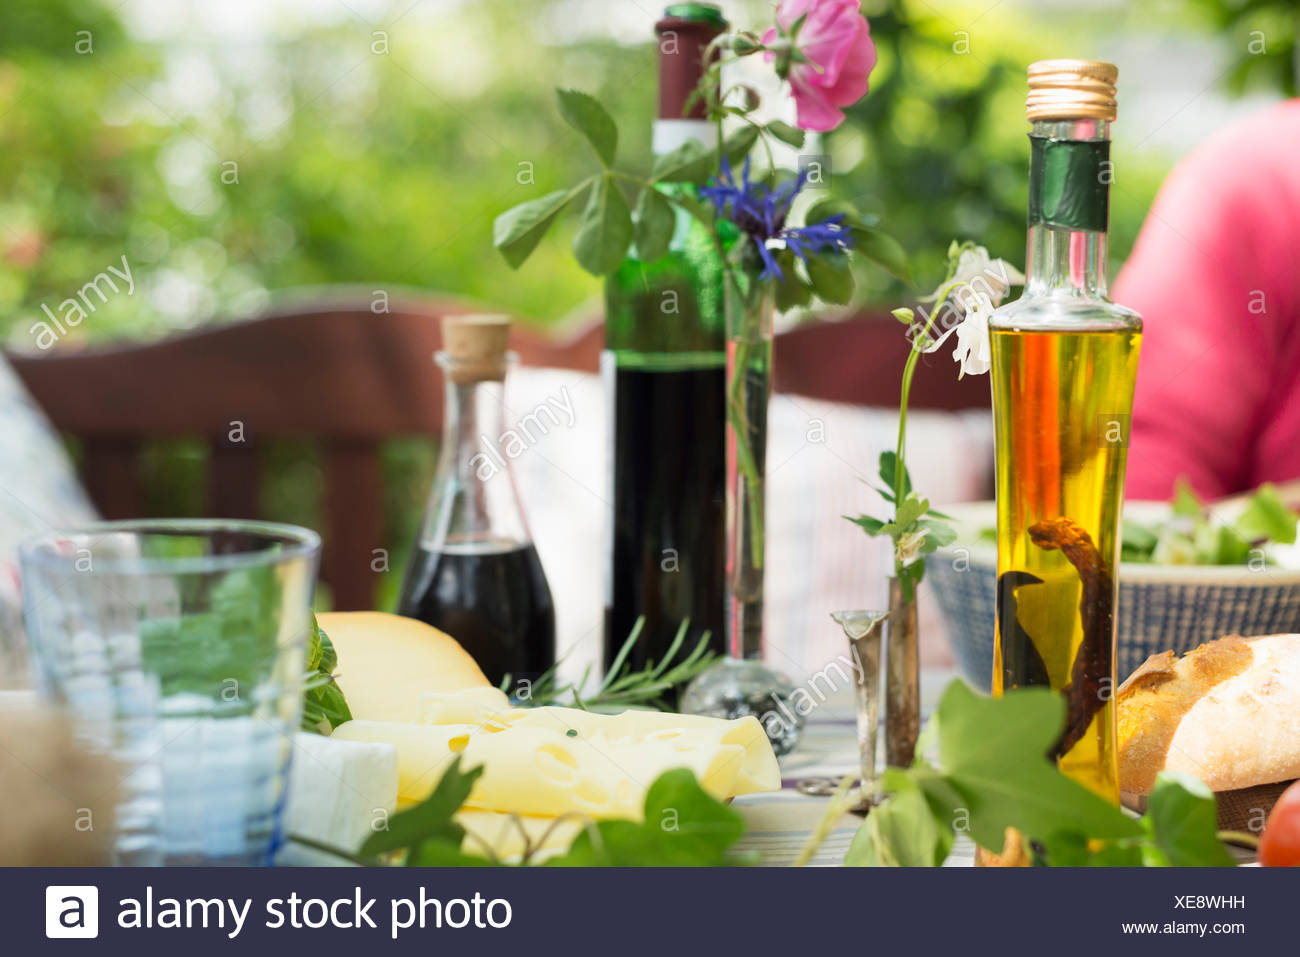 Oils and vinegar on table, close up - Stock Image